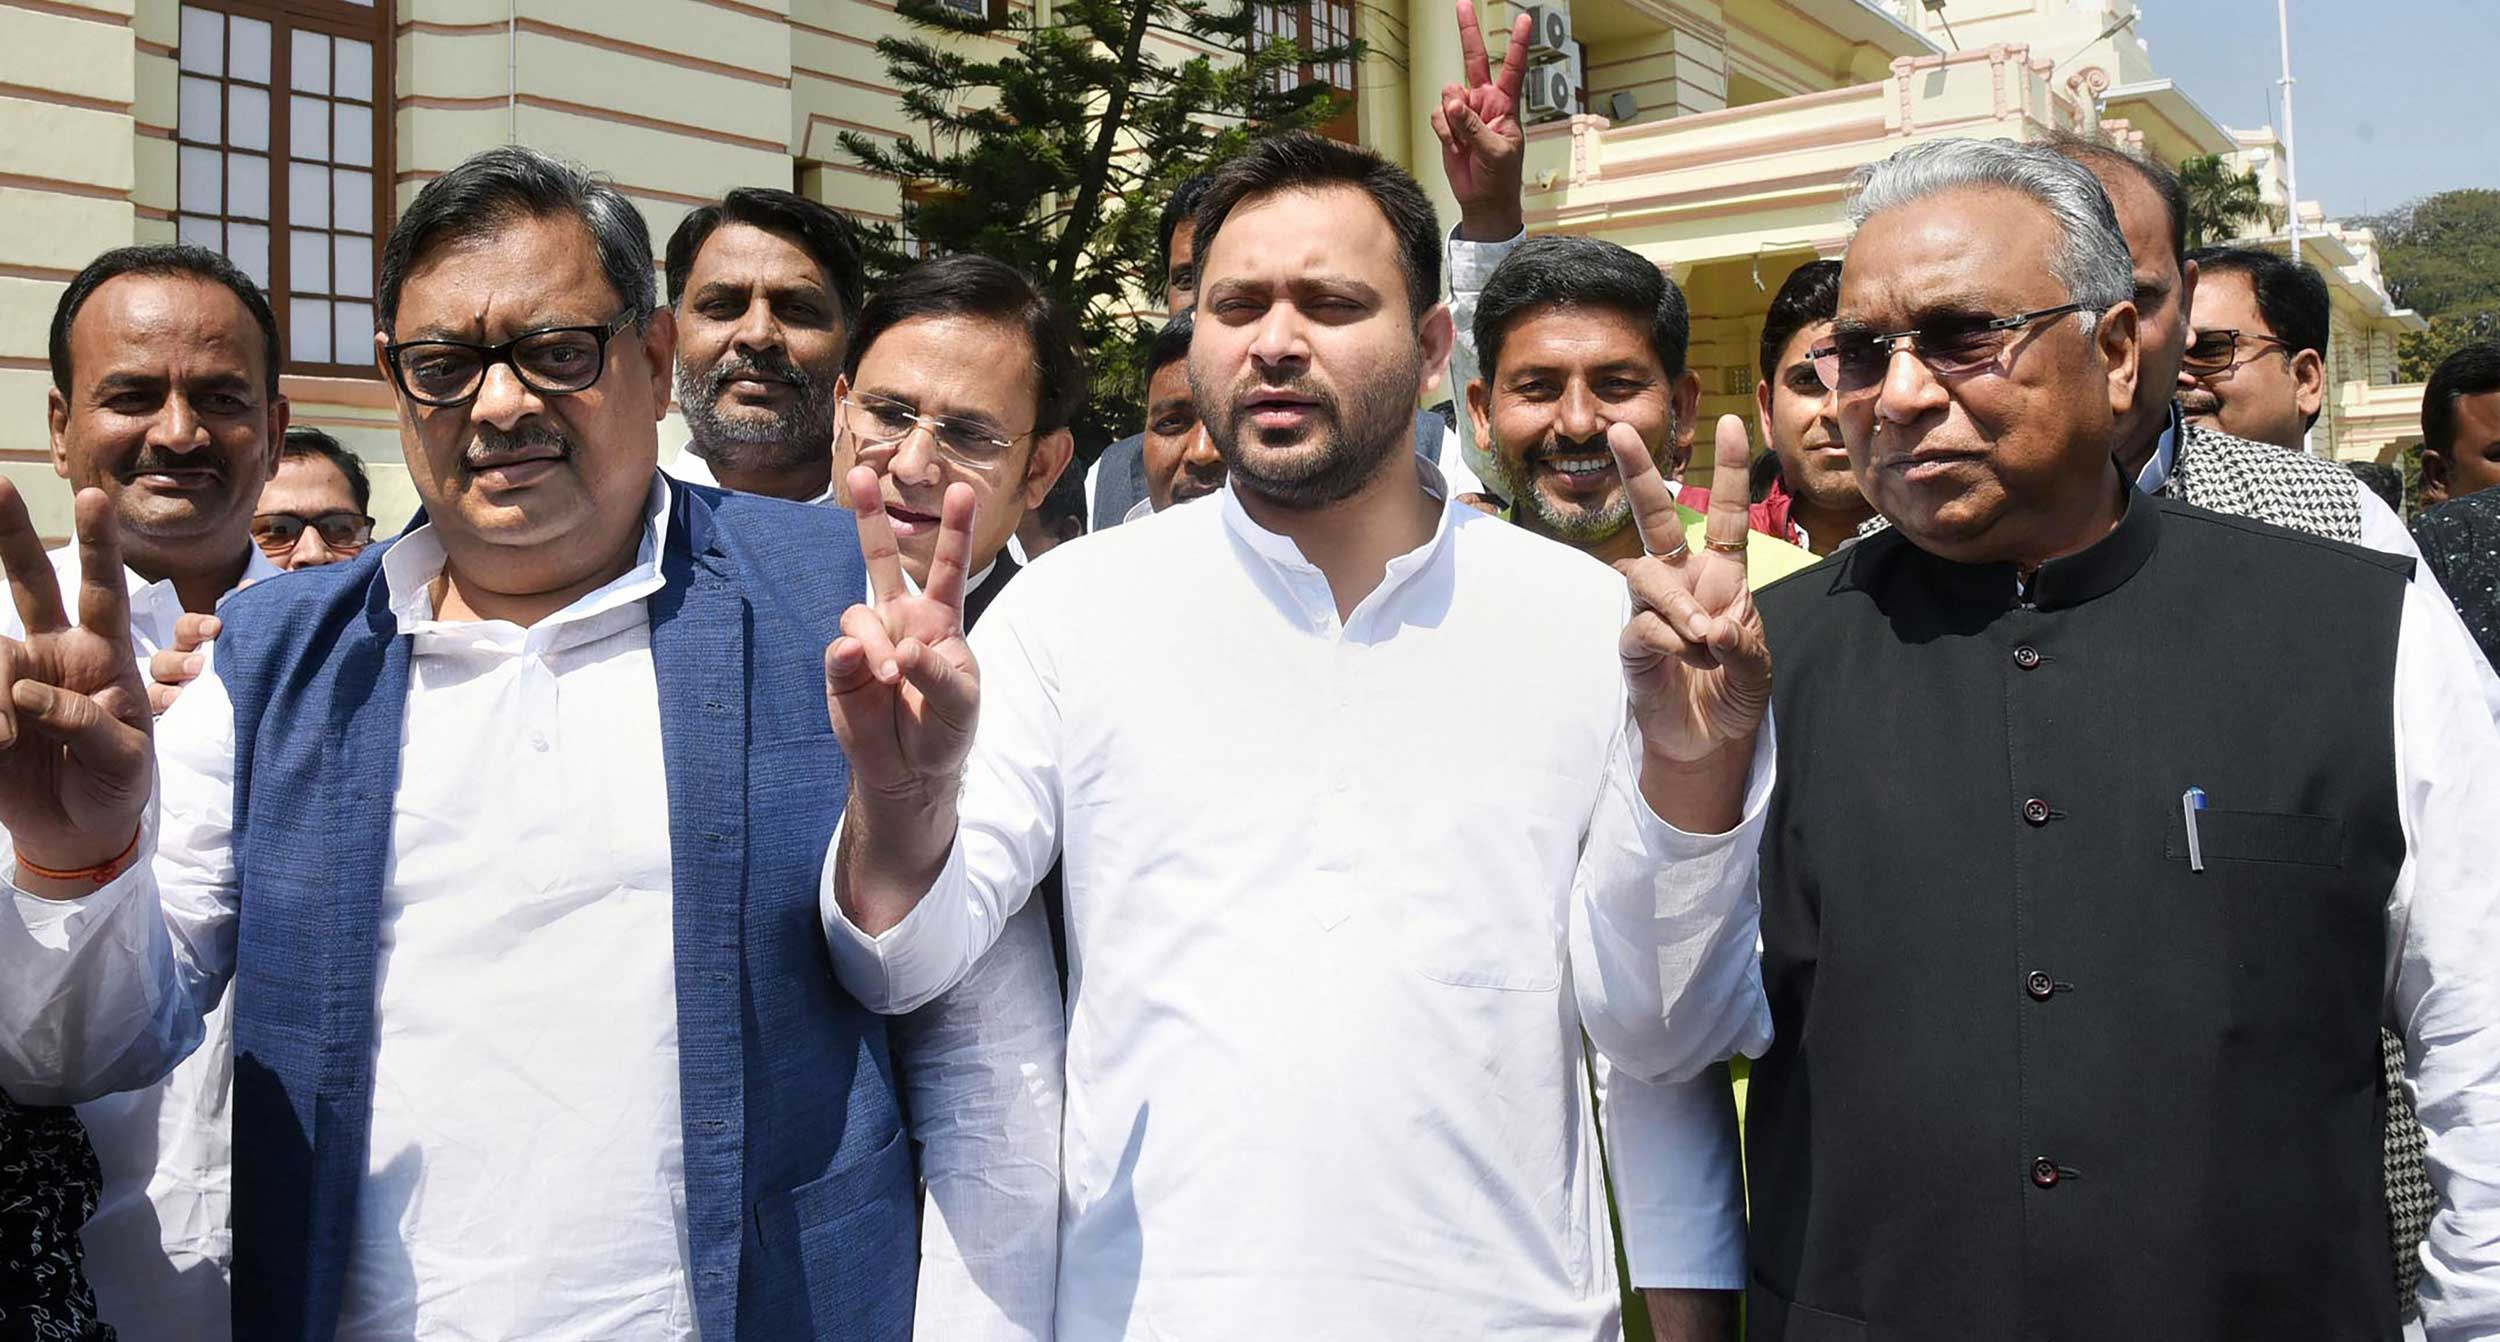 RJD candidates Prem Chand Gupta (right) and Amarendra Dhari Singh (left) with party leader Tejashwi Prasad Yadav flash victory sign after filing their nominations for Rajya Sabha elections, at Bihar Legislative Assembly in Patna, on Thursday.